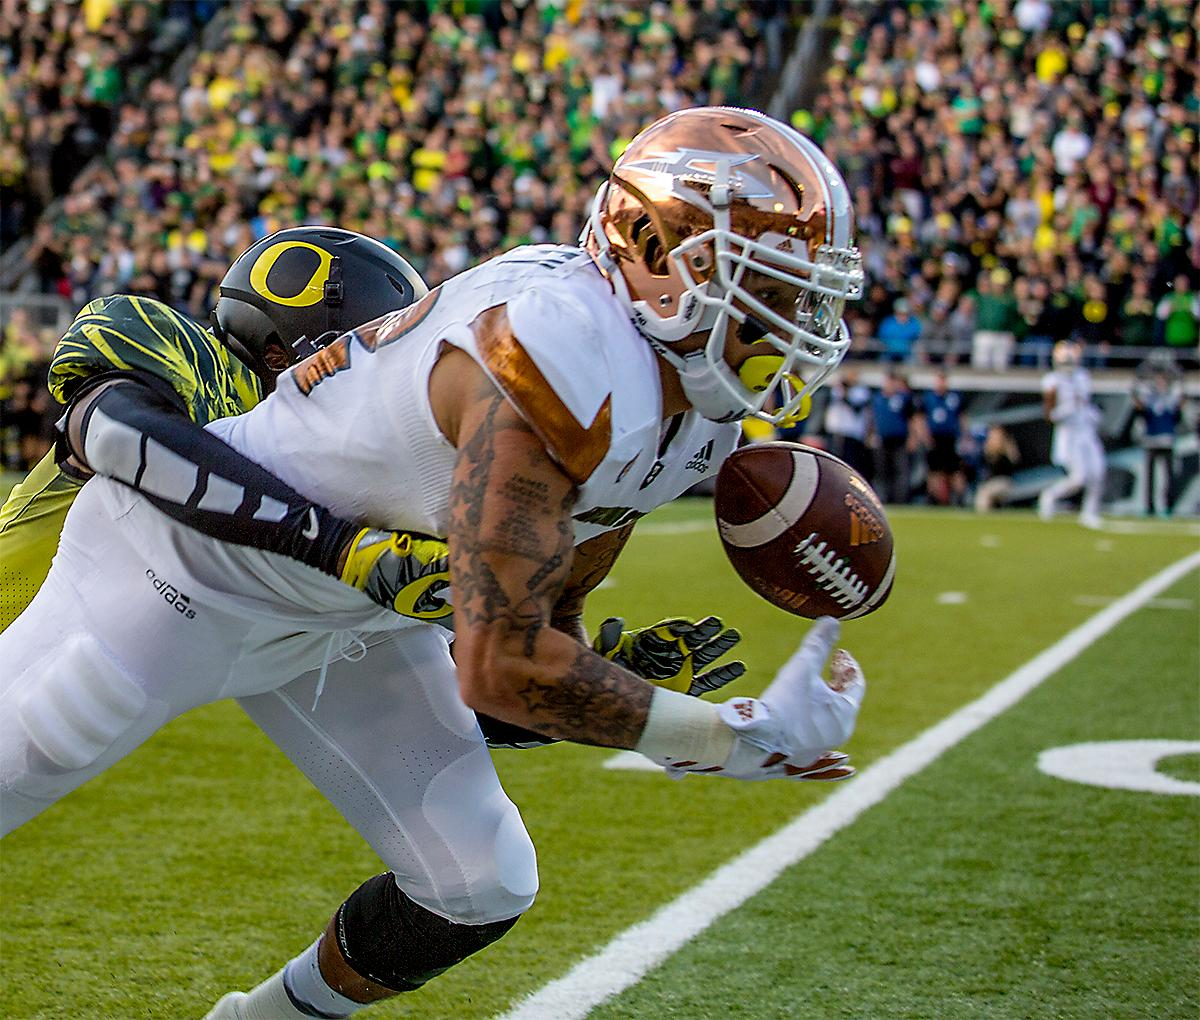 The Sun Devils' Jalen Harvey (#82) goes for a catch as a Ducks player tackles him. The Oregon Ducks broke their losing streak by defeating the ASU Sun Devils on Saturday 54-35. Photo by August Frank, Oregon News Lab